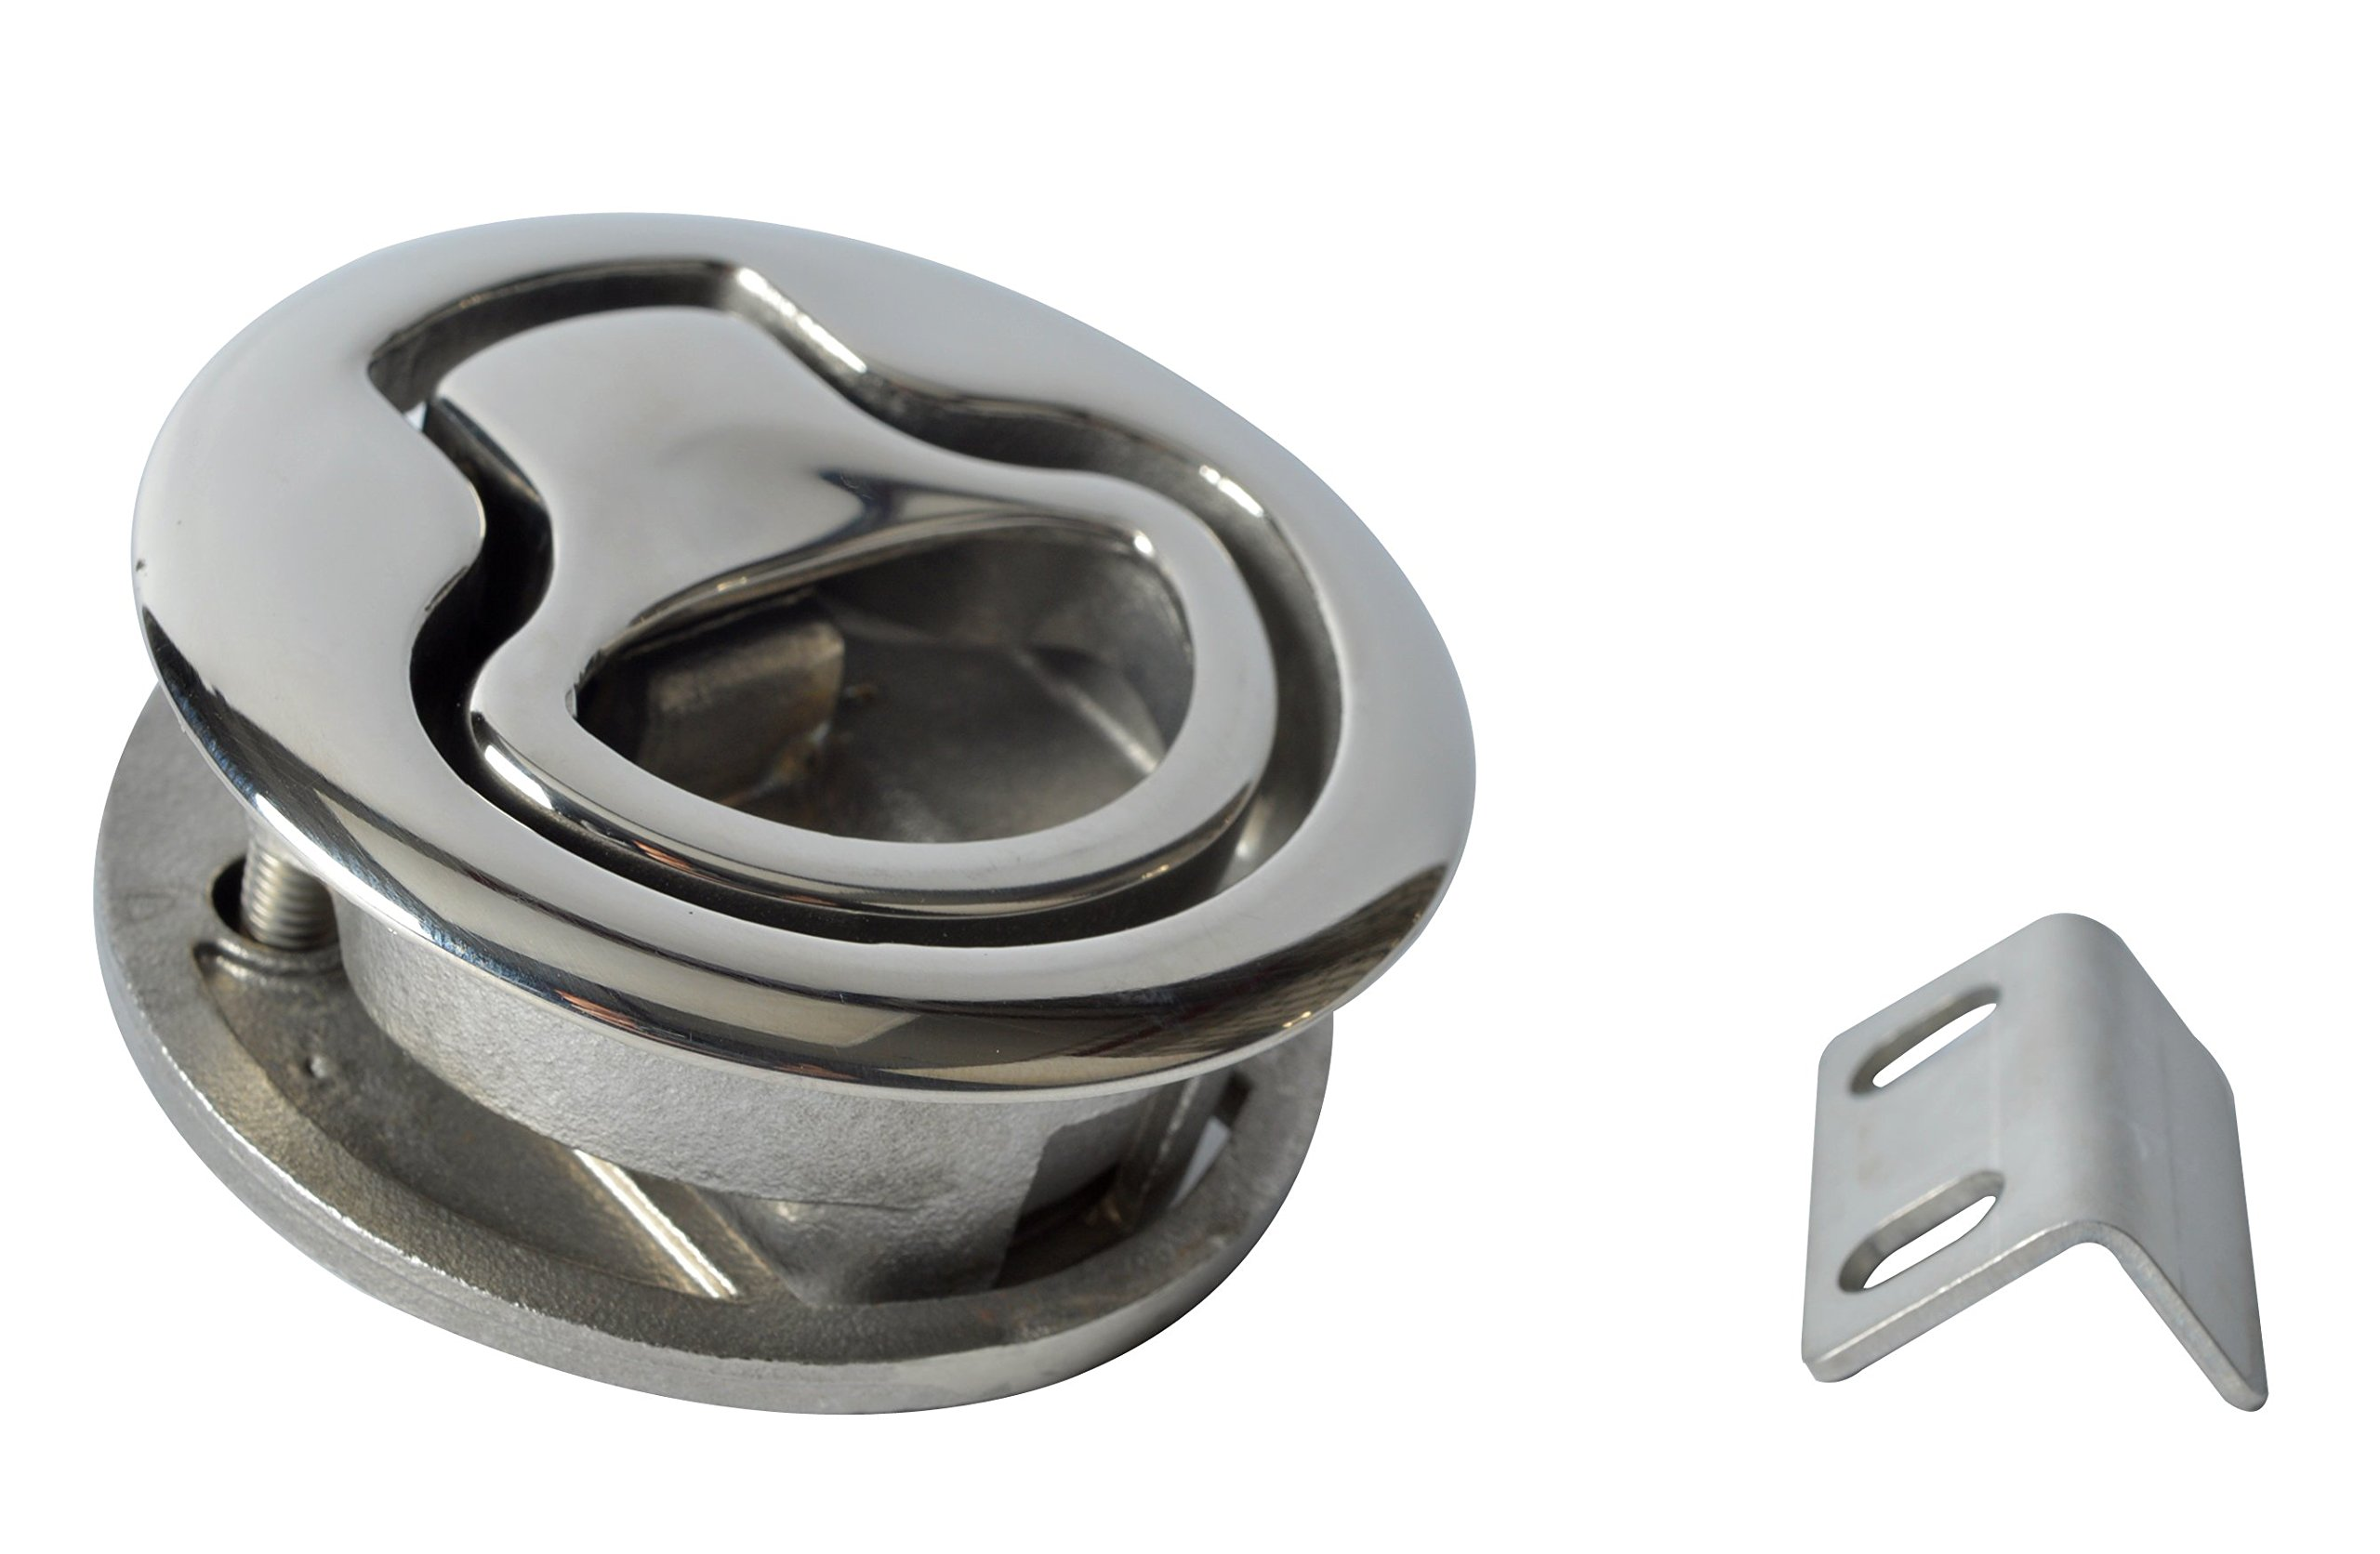 Amarine-made Marine Boat Stainless Steel 2'' Flush Pull Hatch Latch (A) by Amarine-made